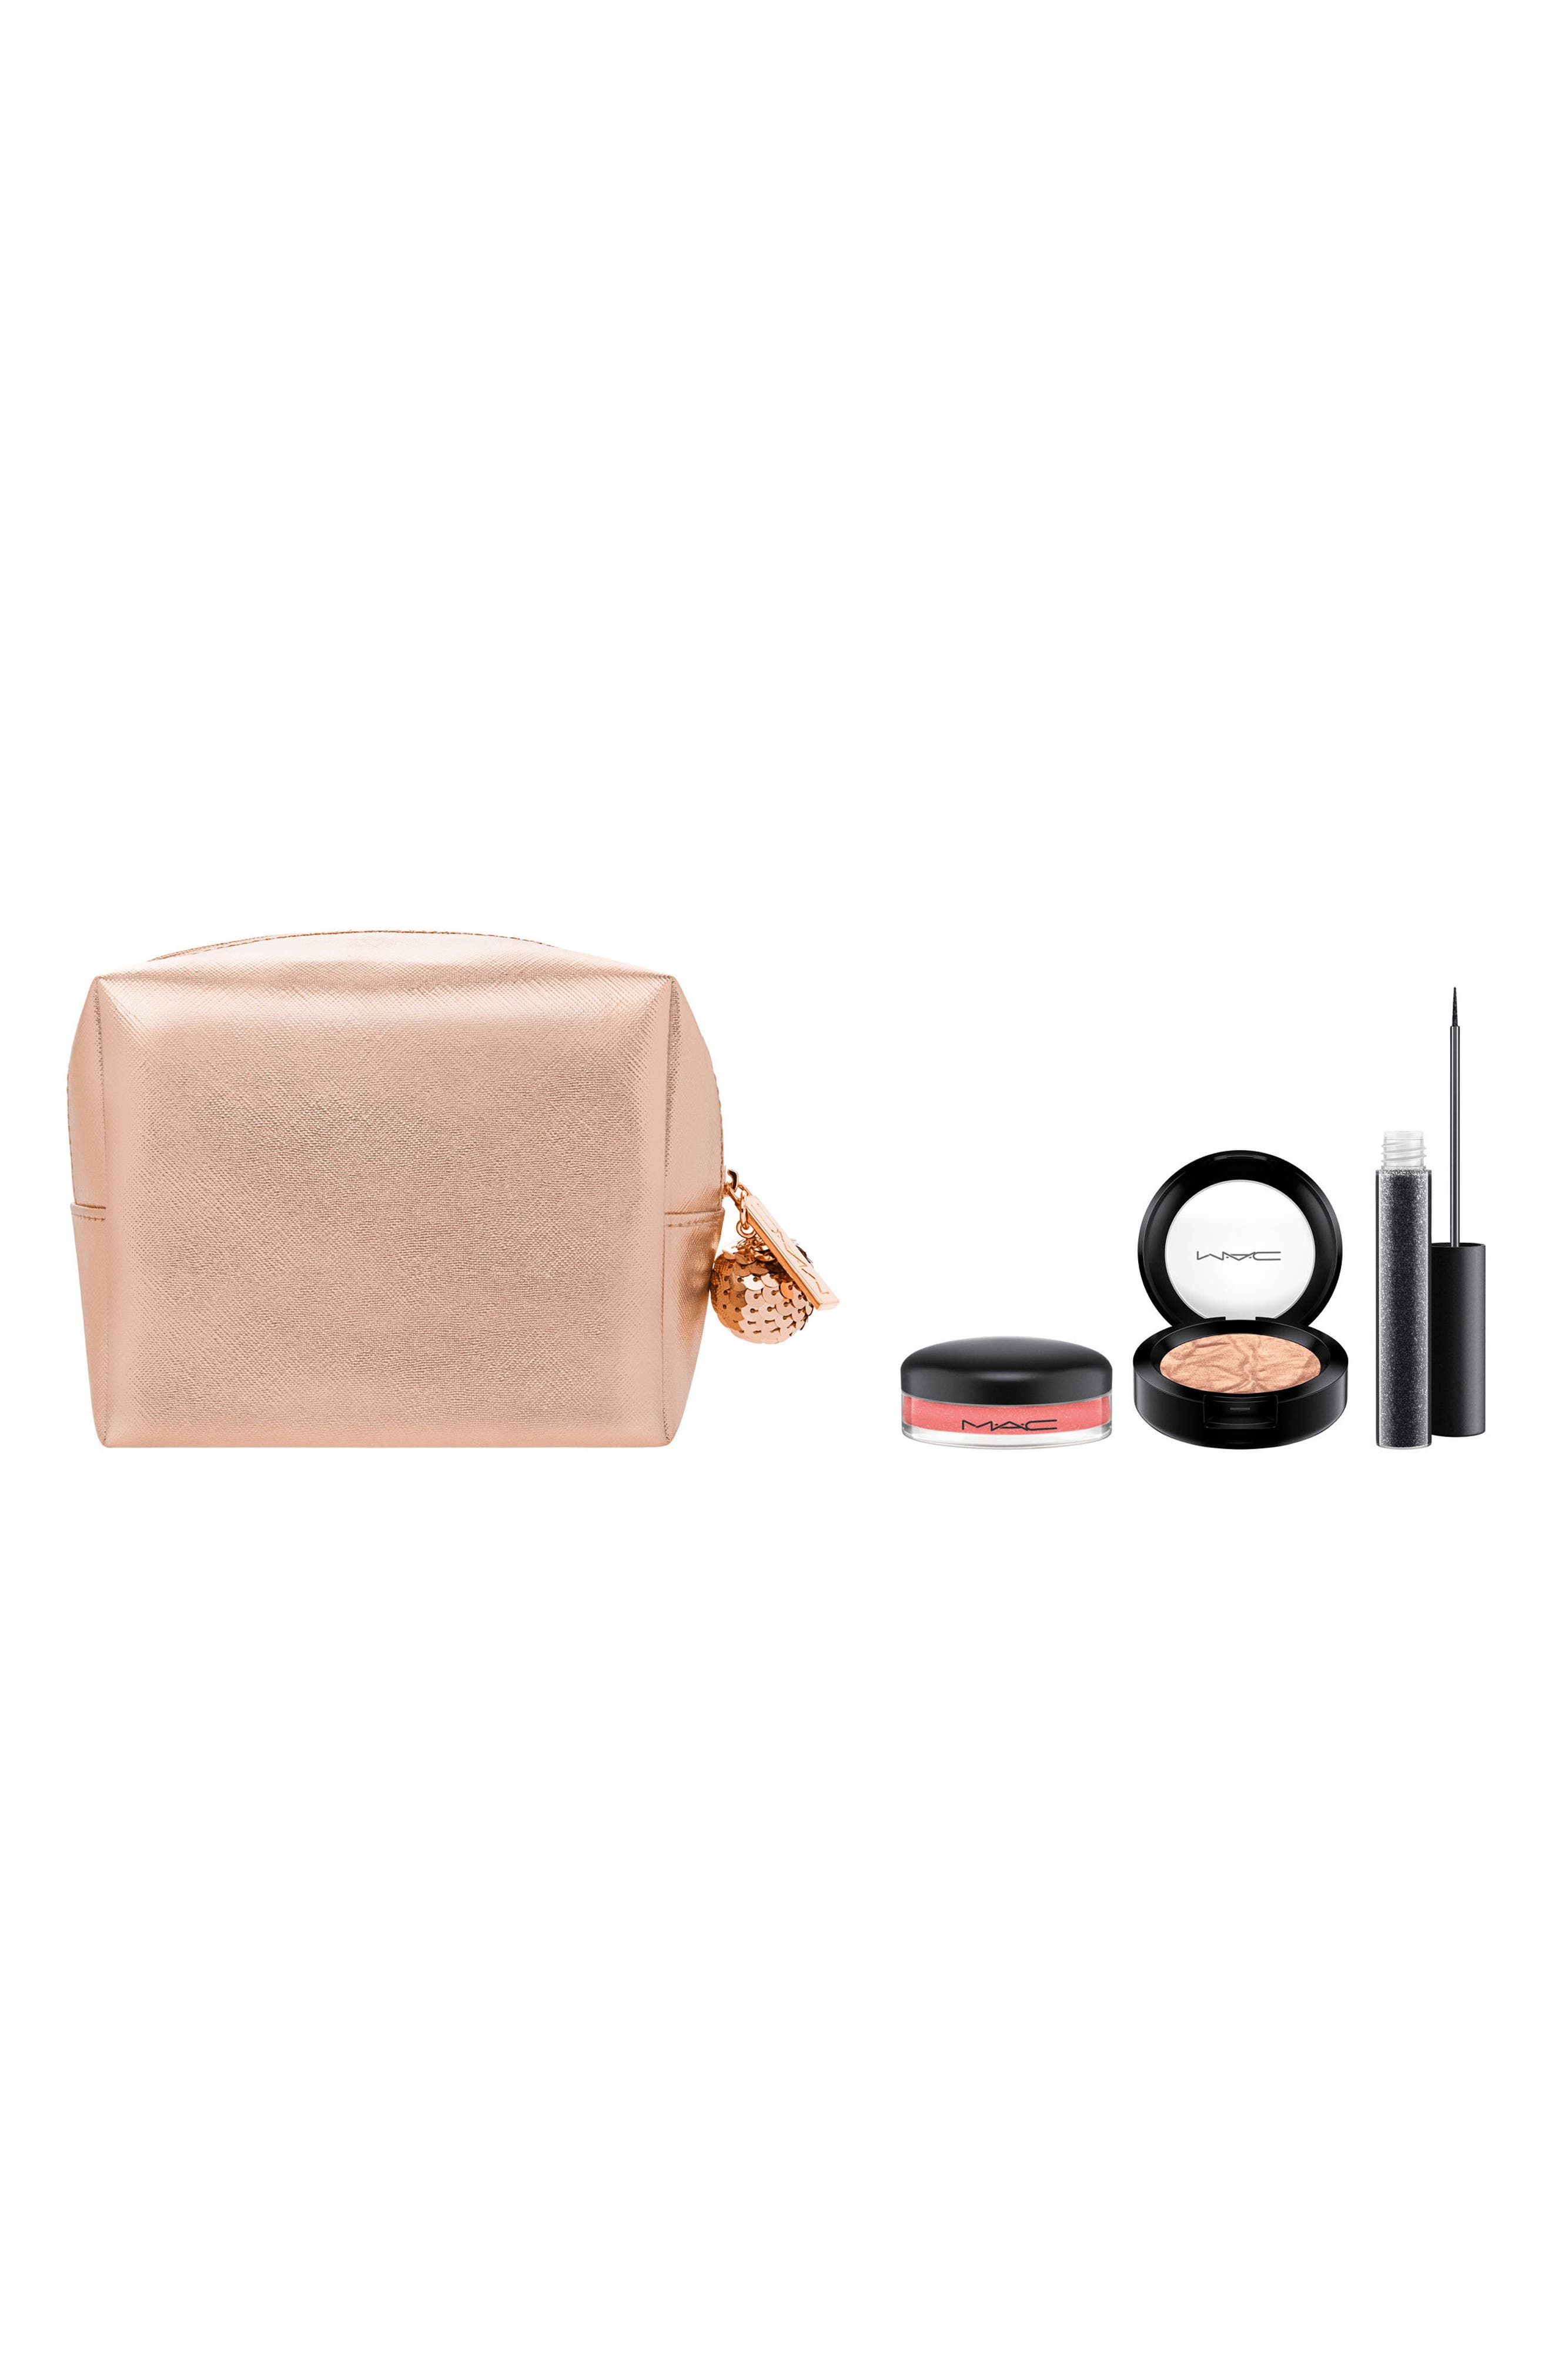 Main Image - MAC Snow Ball Rose Gold Eye & Lip Bag (Nordstrom Exclusive) ($73 Value)